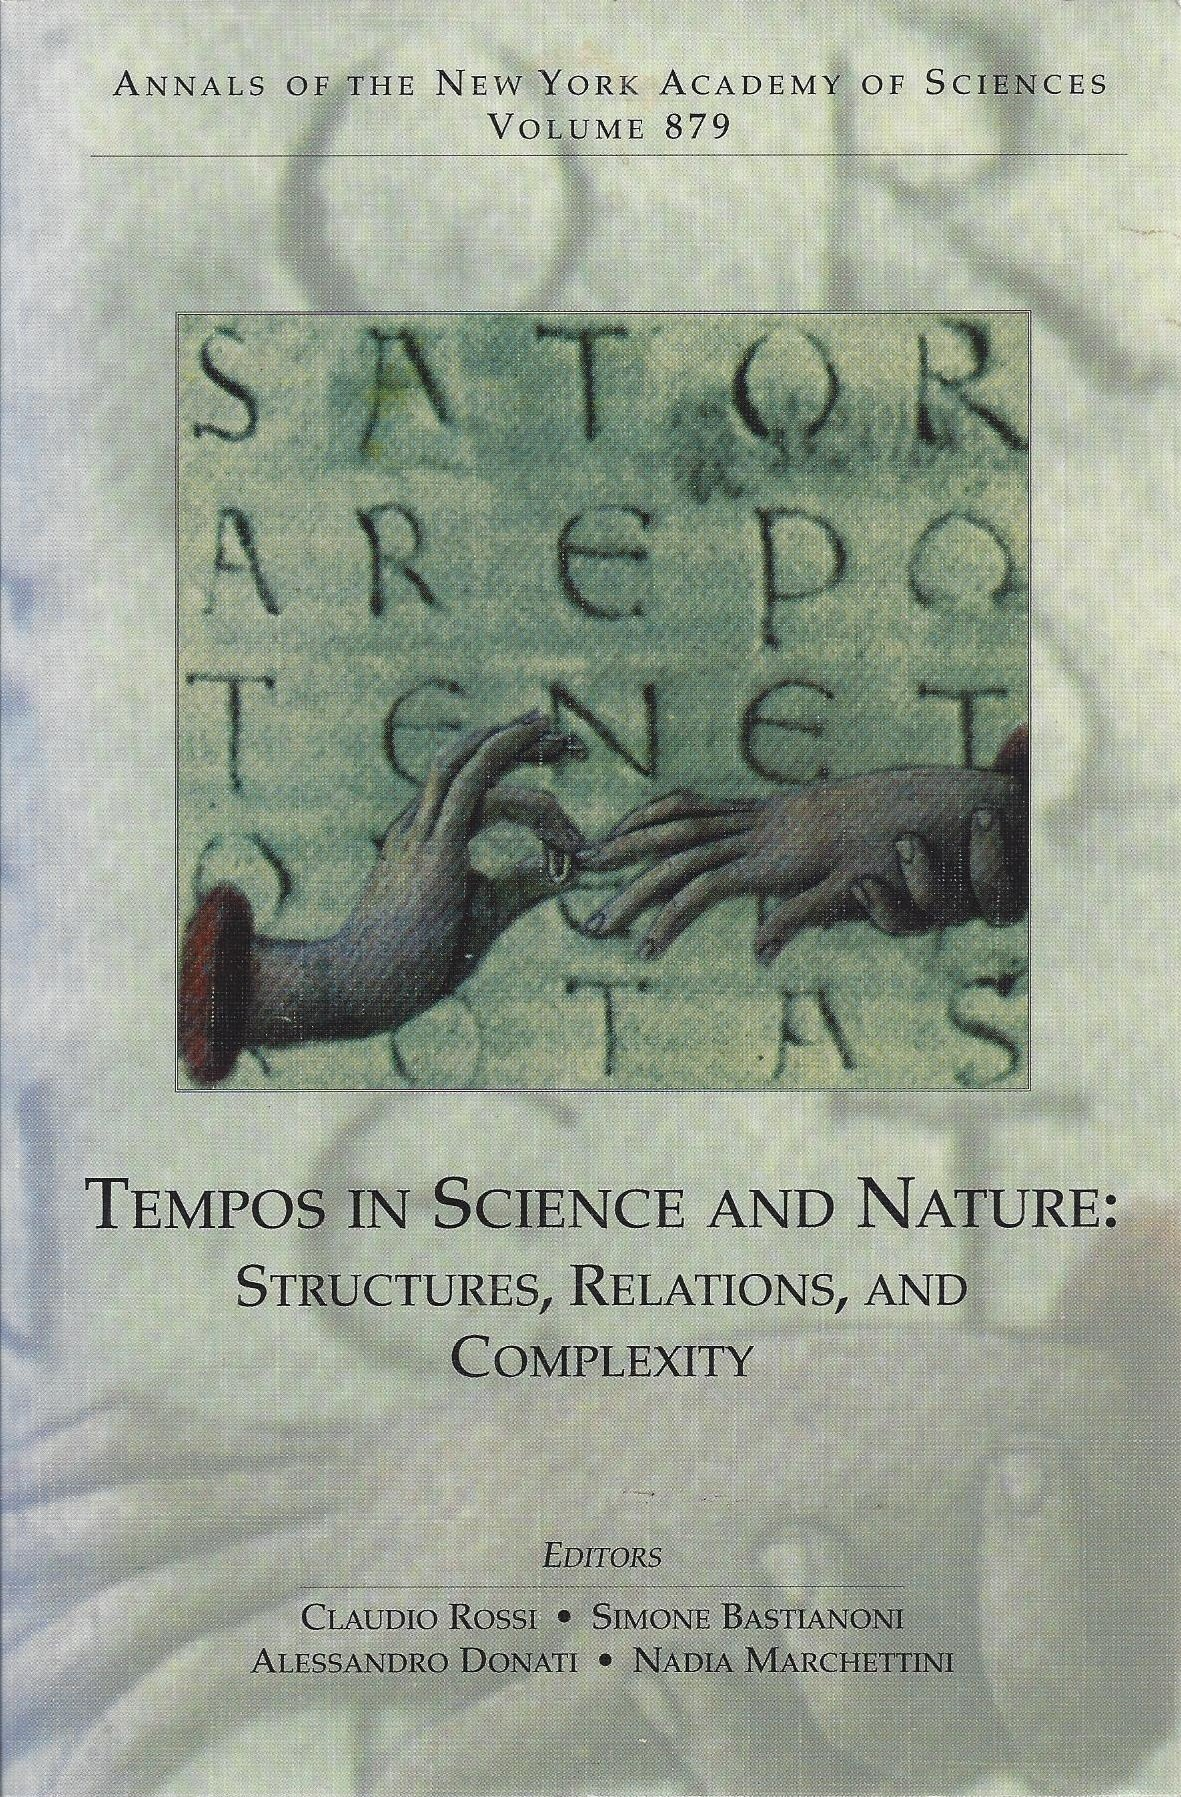 Tempos in Science and Nature: Structures, Relations, and Complexity (Annals of the New York Academy of Sciences) pdf